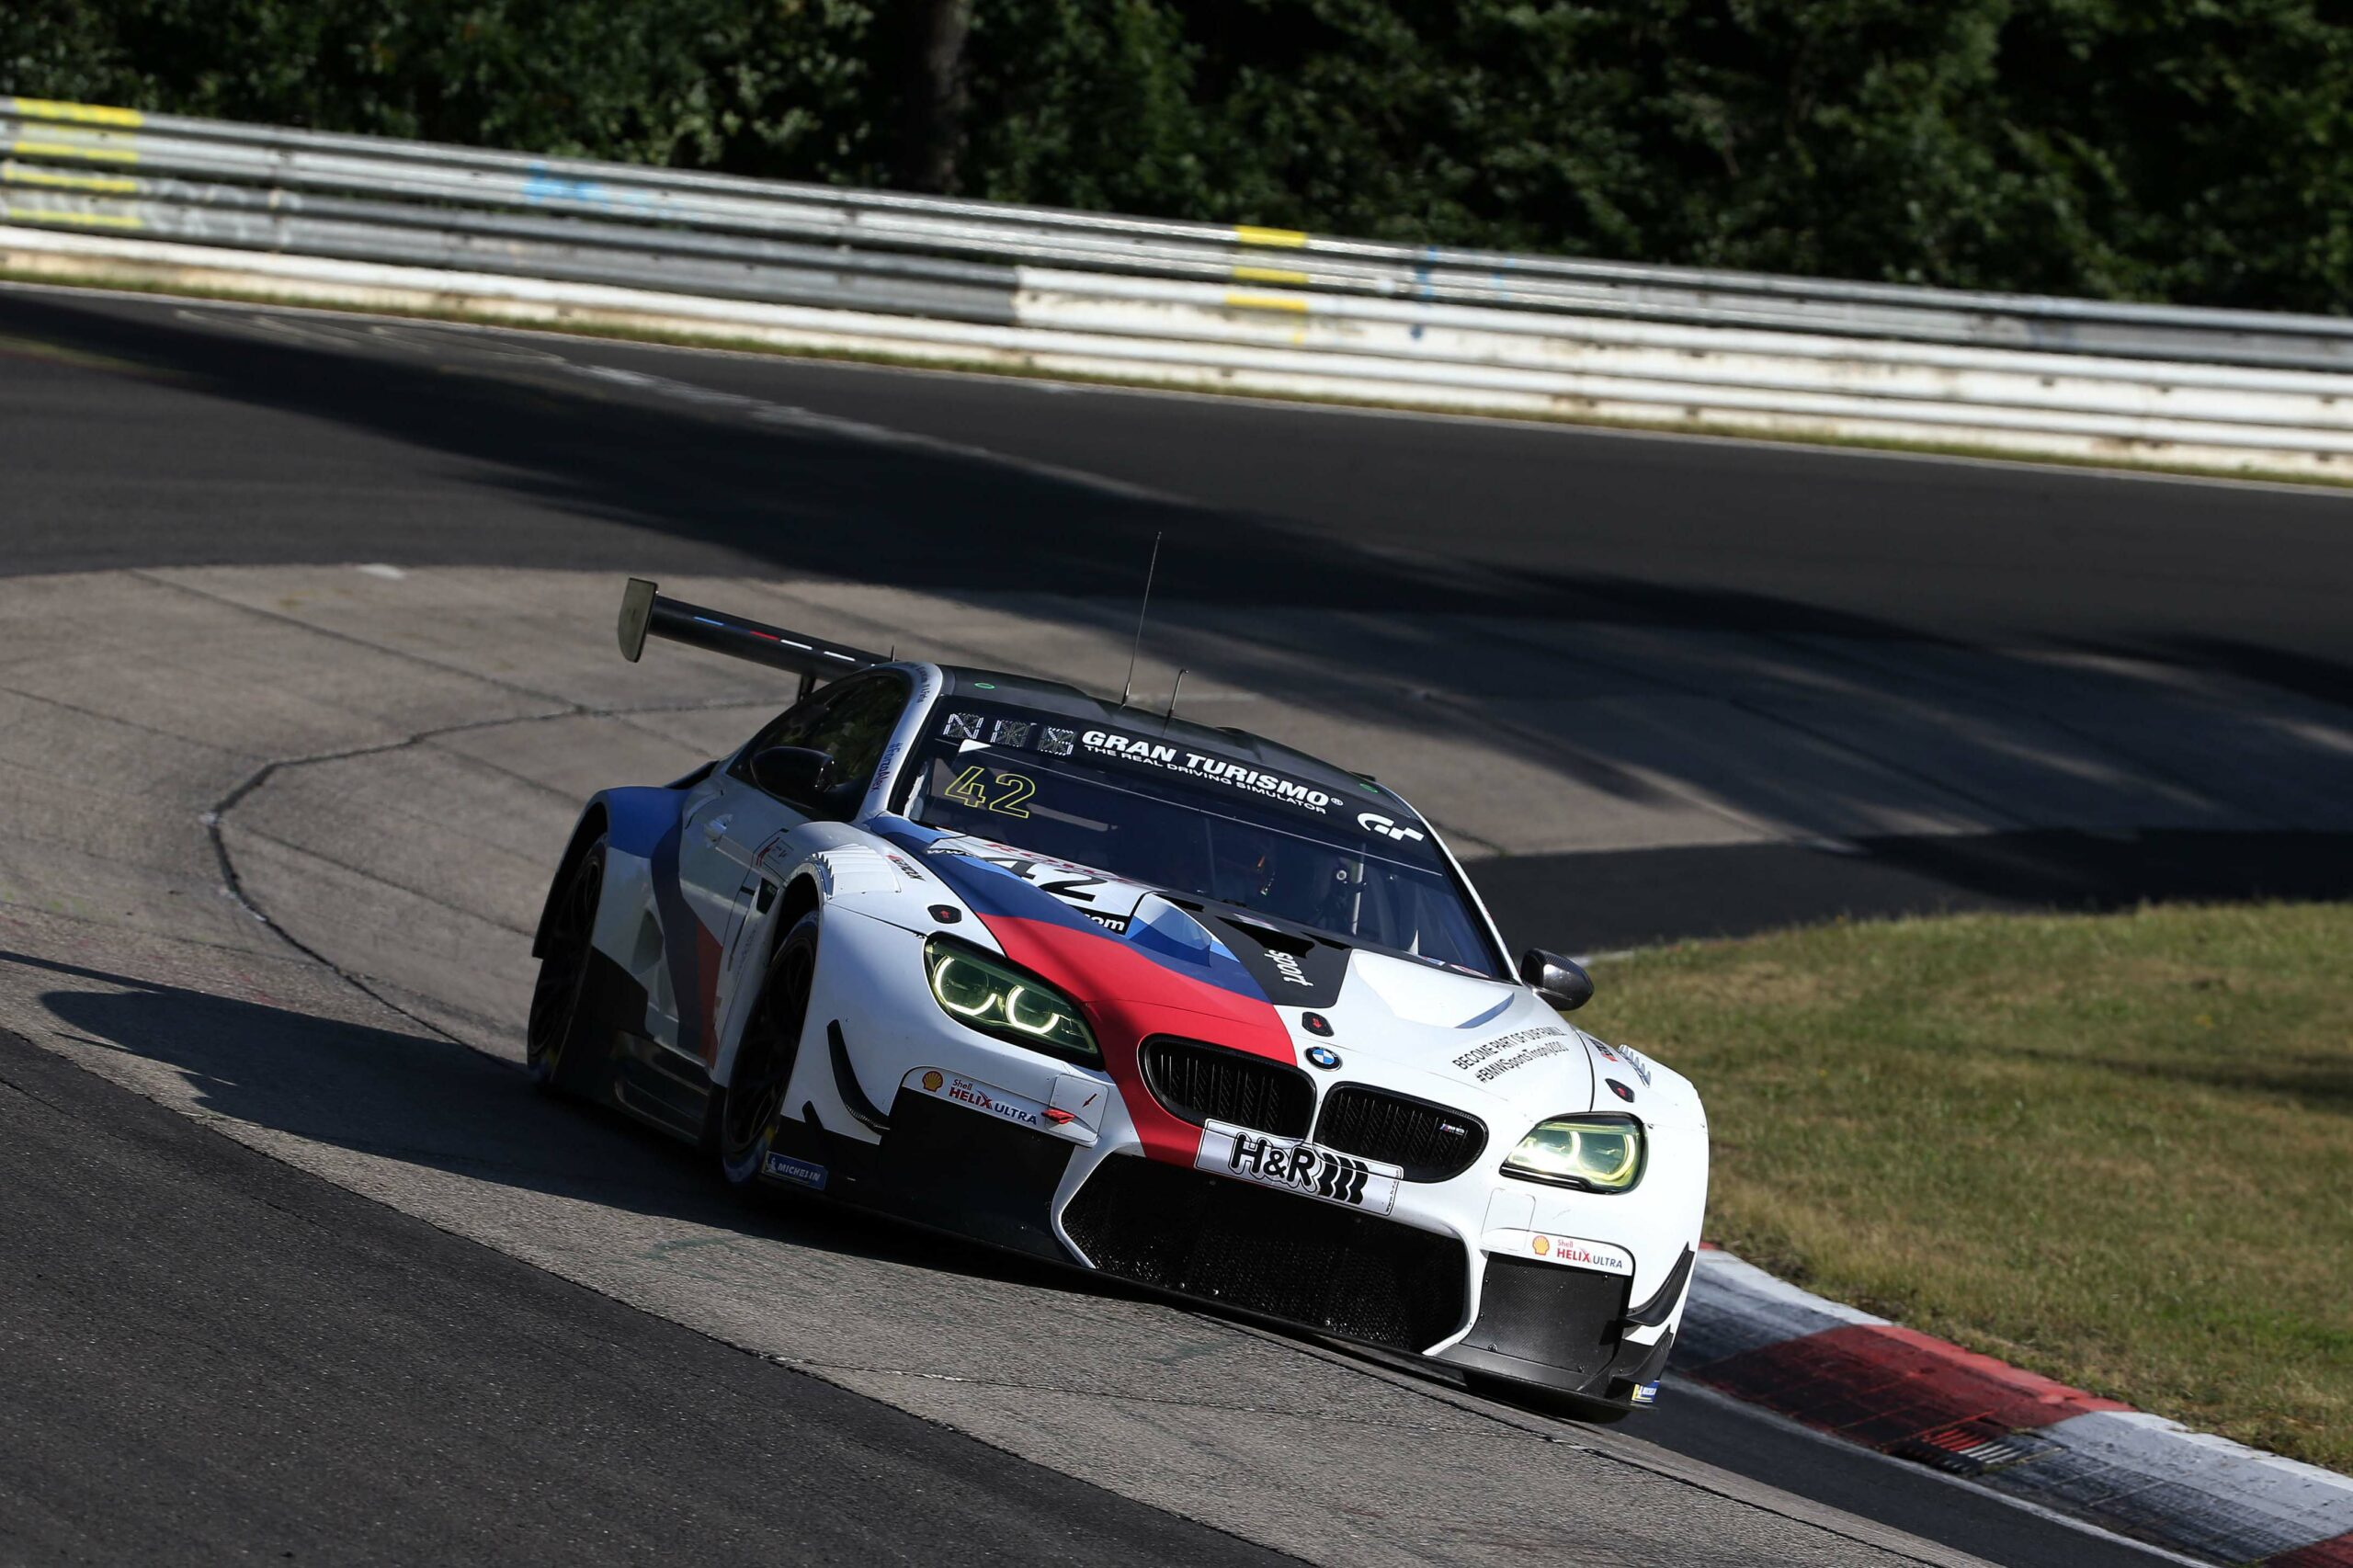 BMW not sure if will compete in the 2021 DTM championship